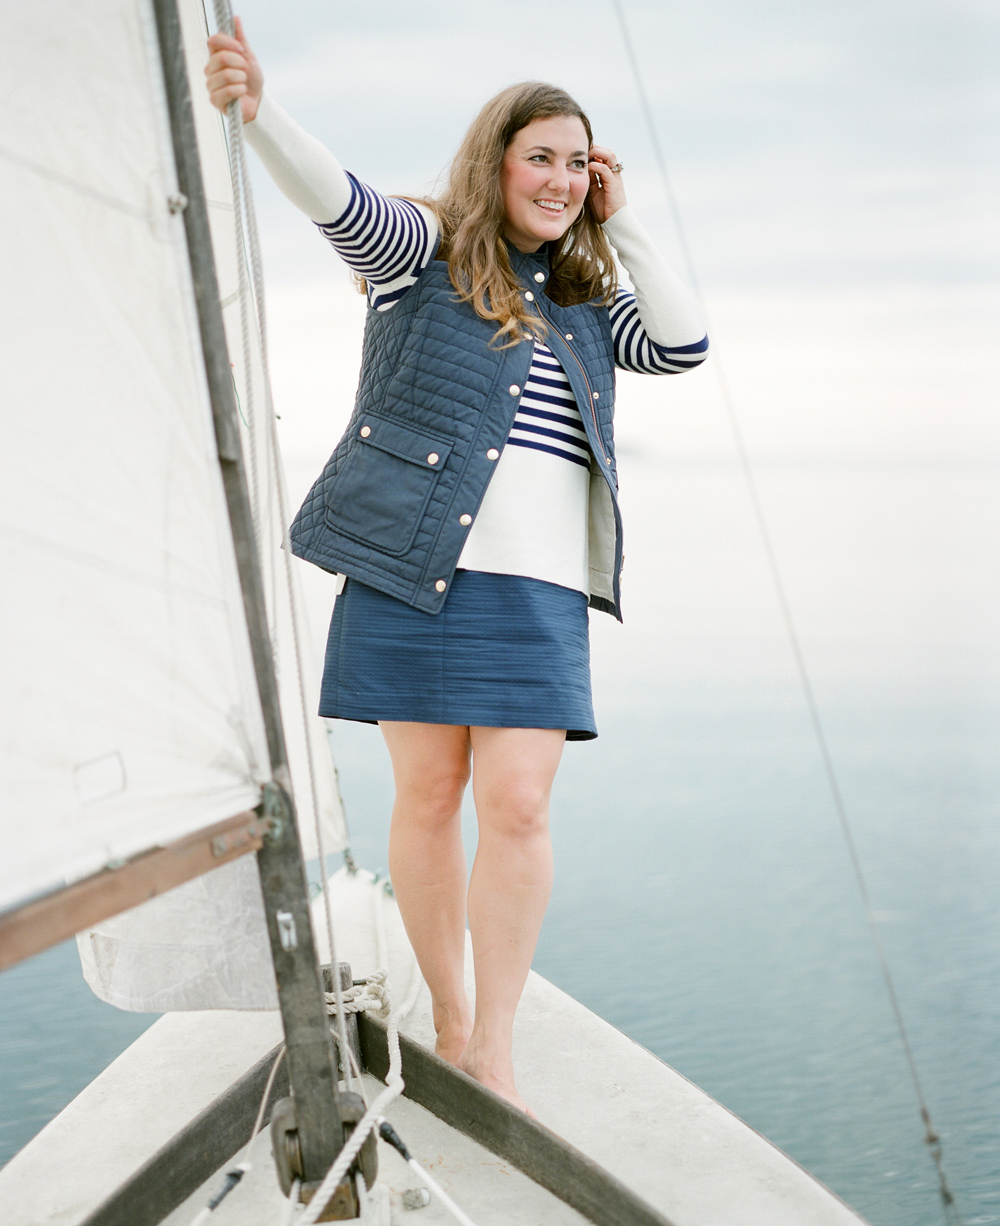 sailboat-engagement-session-wi